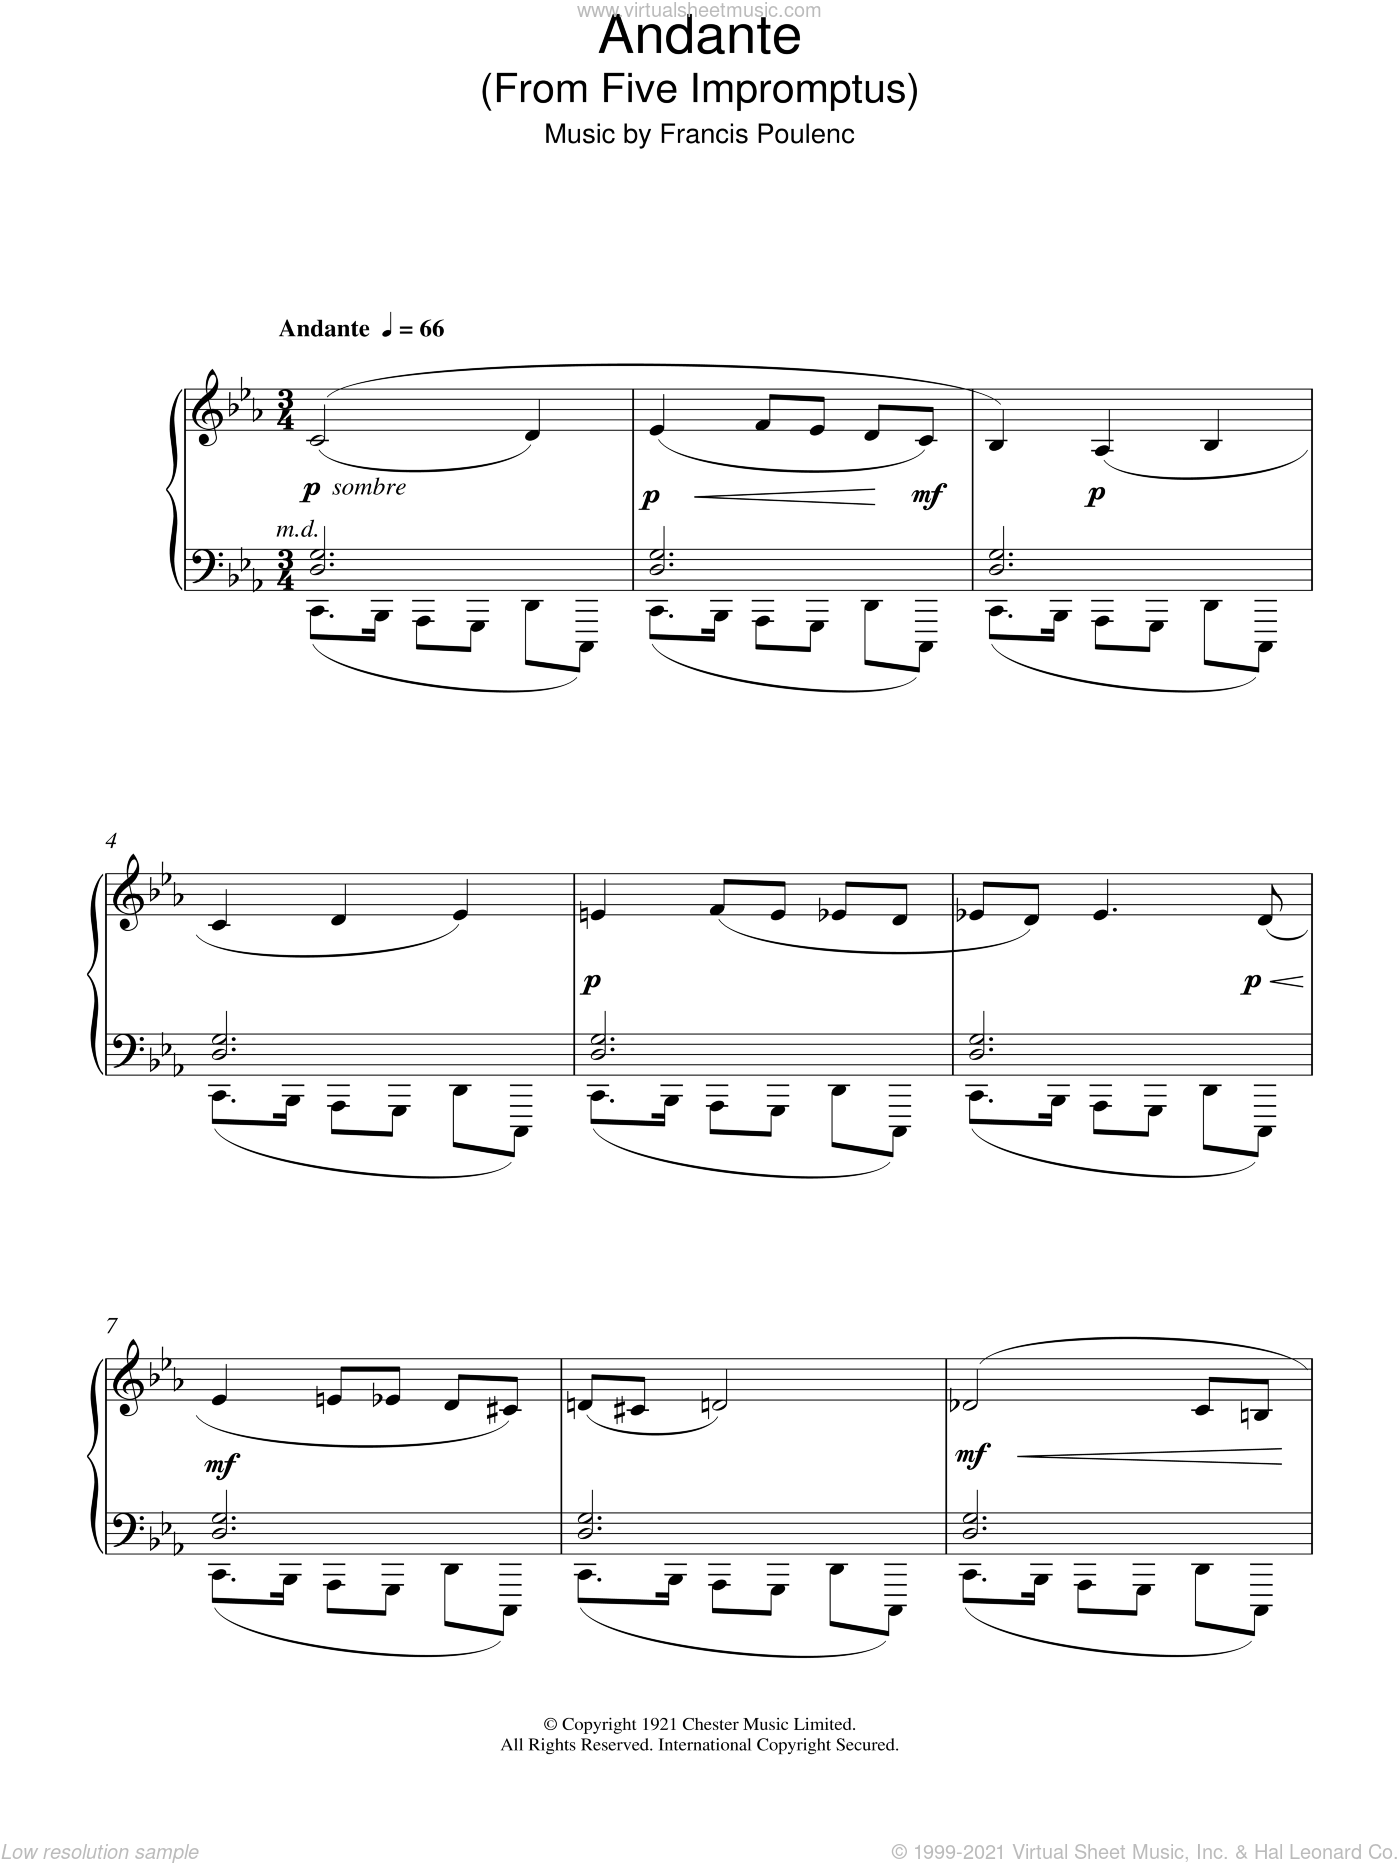 Andante (From Five Impromptus) sheet music for piano solo by Francis Poulenc